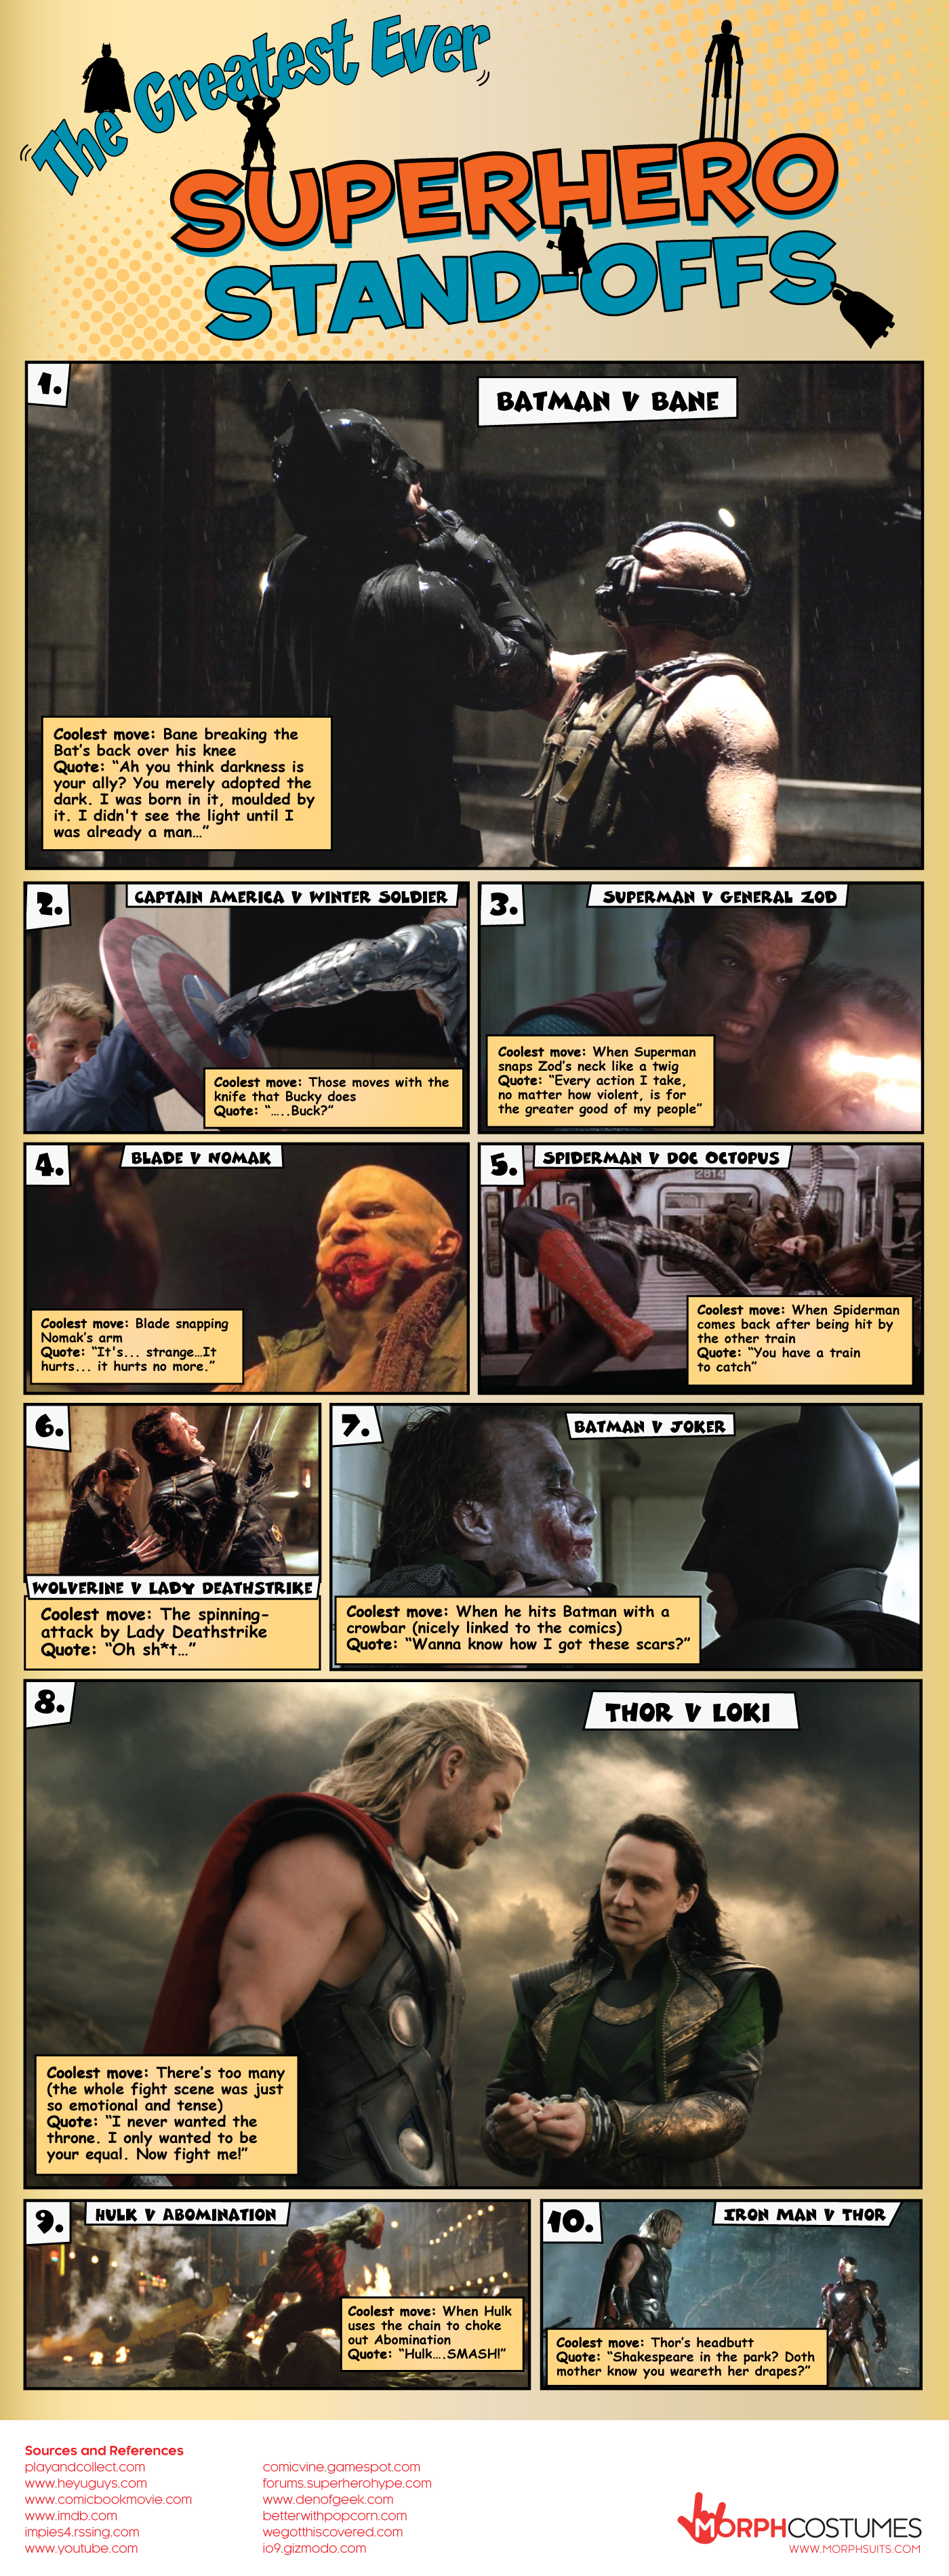 The-Greatest-Ever-Superhero-Stand-Offs-Infographic